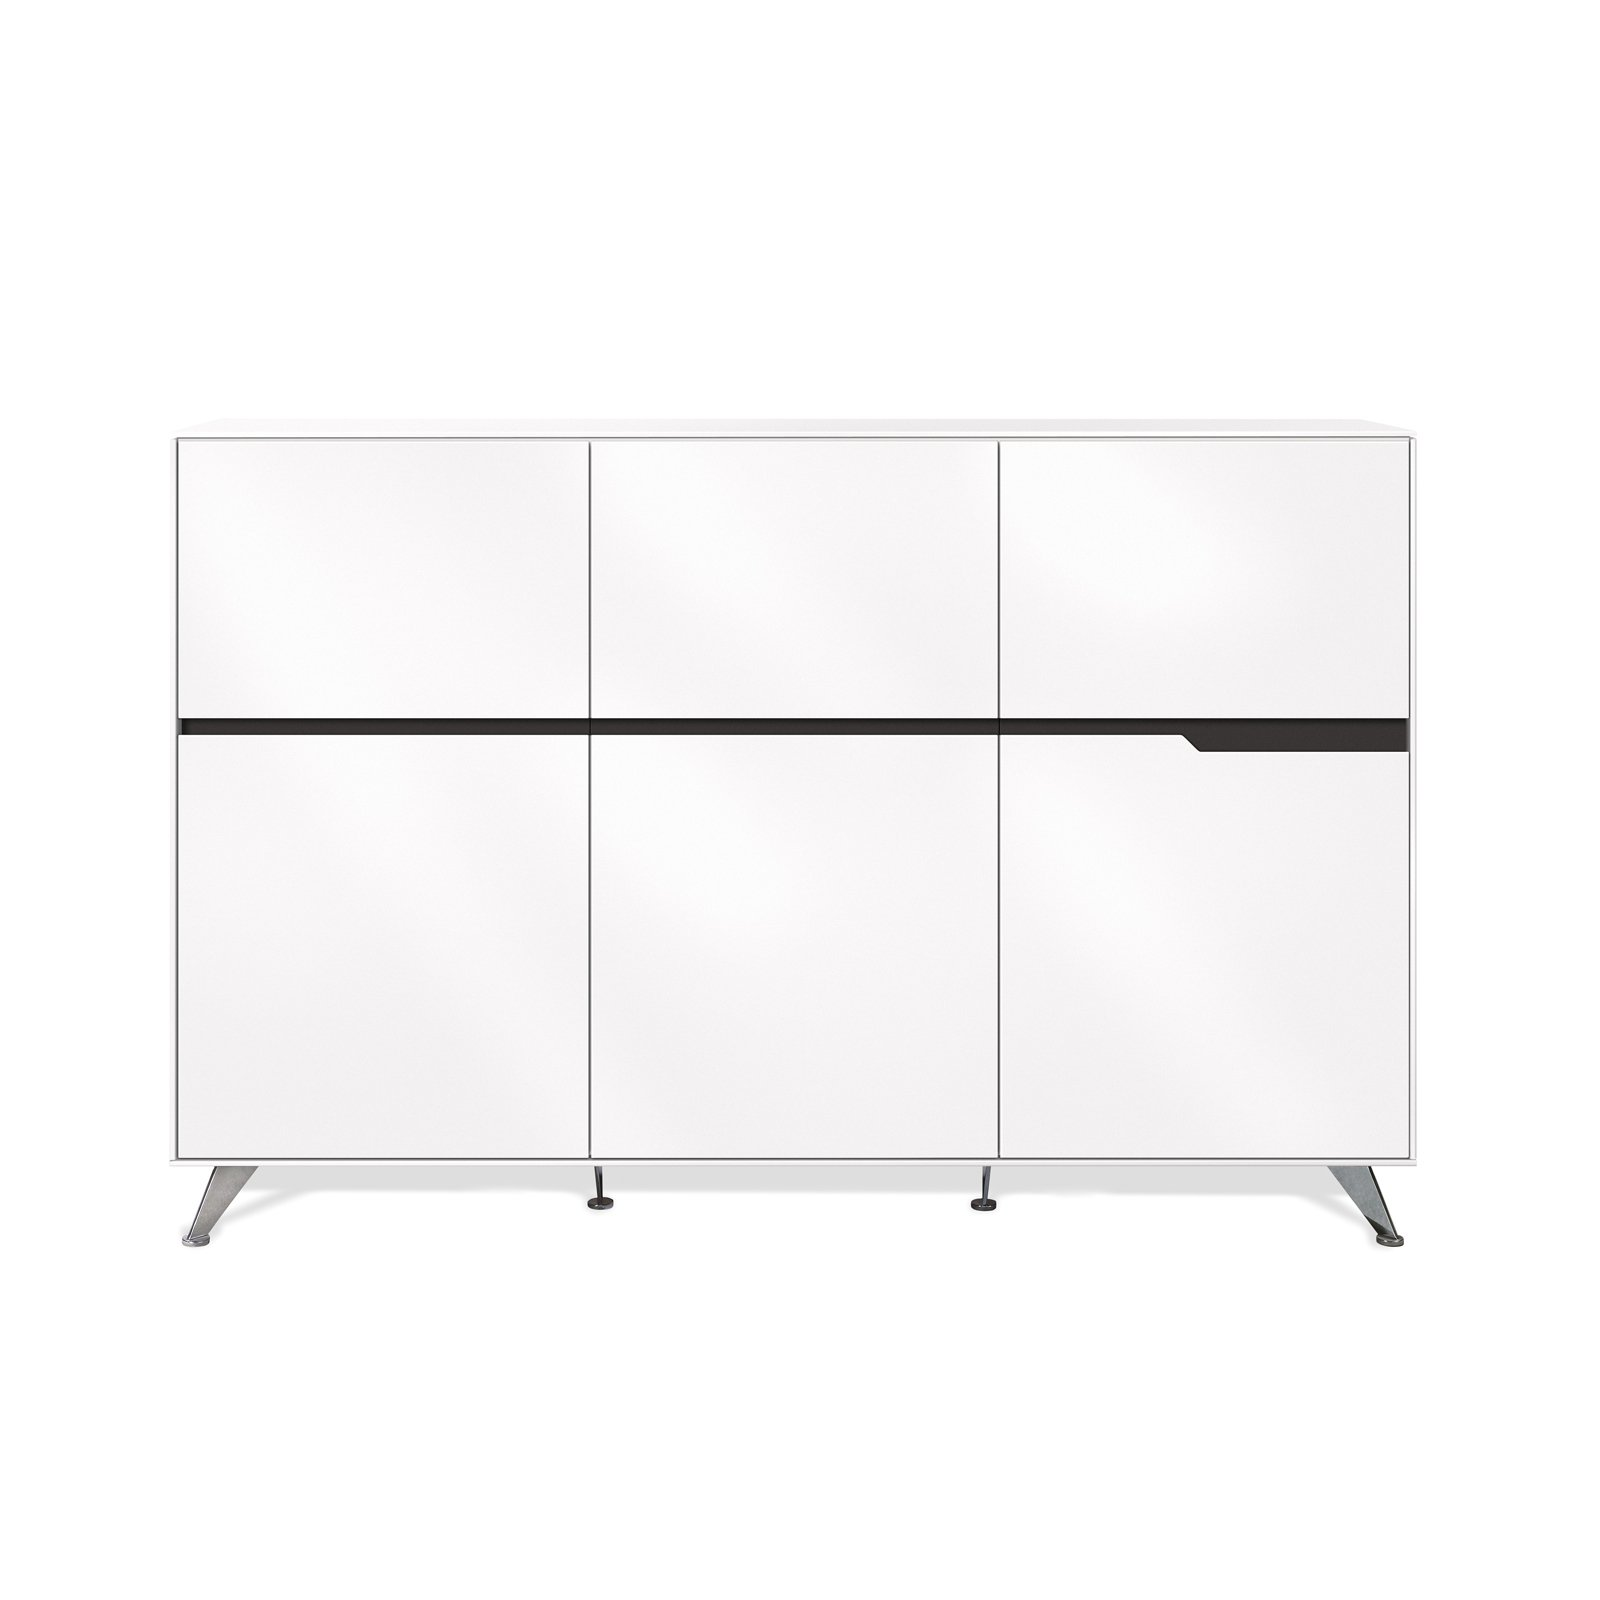 Unique Furniture 496-WH Storage Cabinet, White